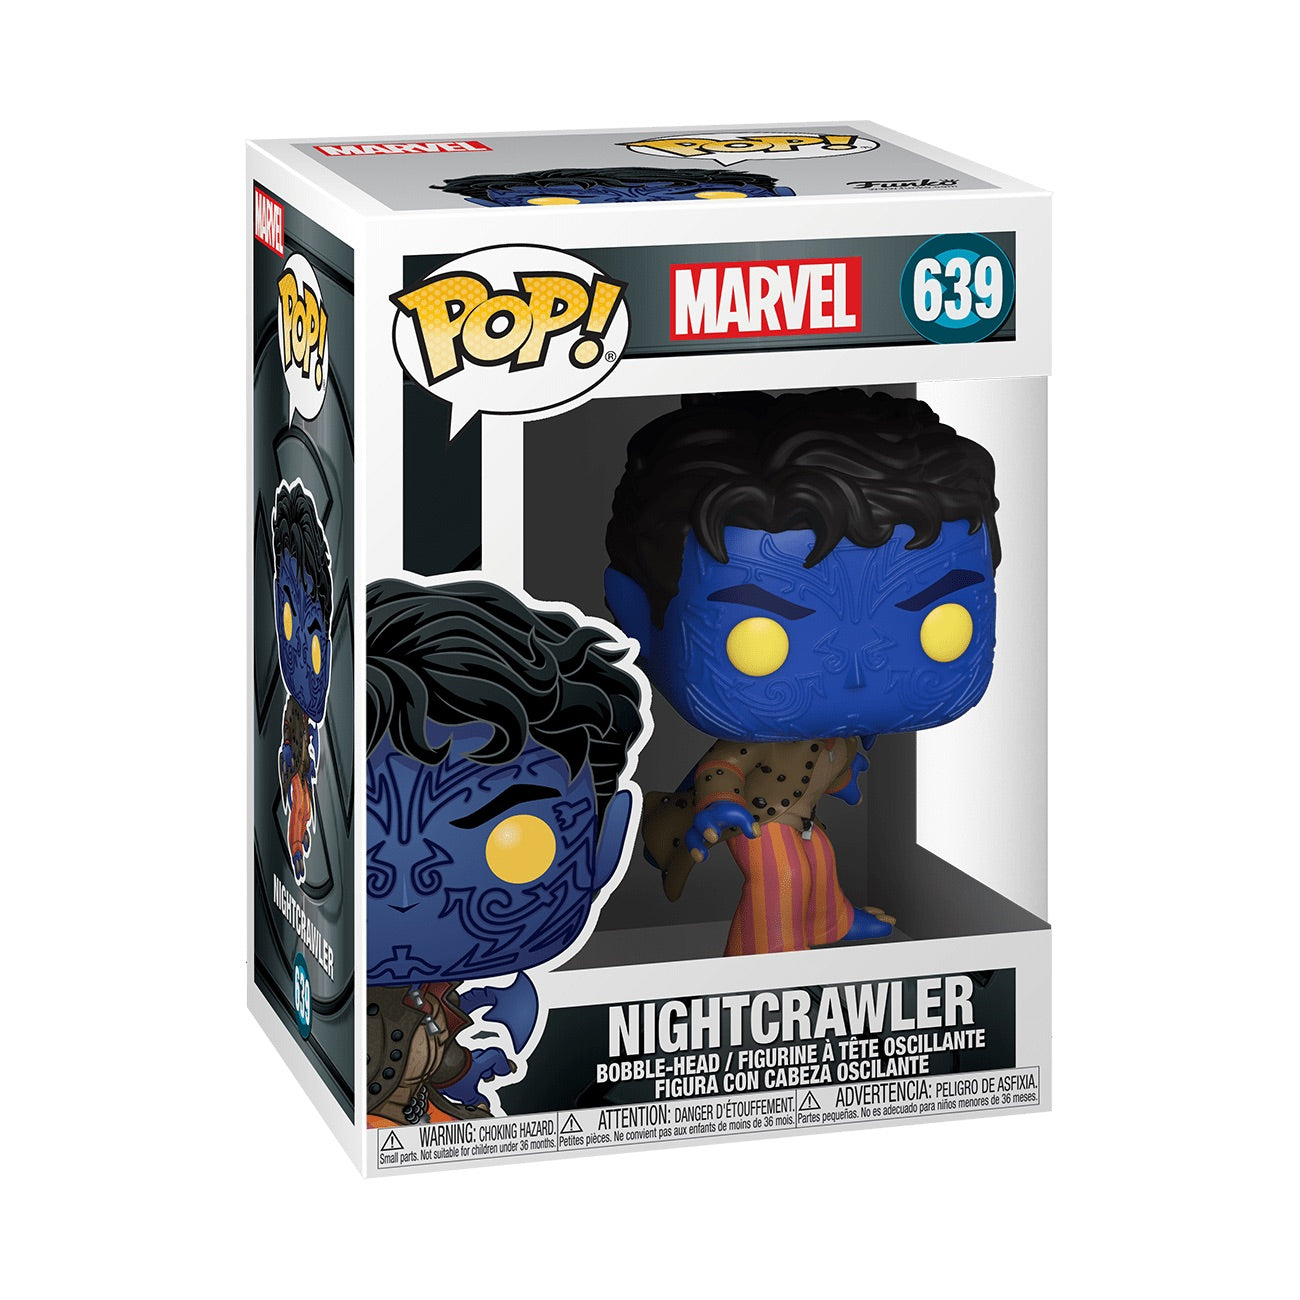 Marvel X-Men 20th Anniversary Nightcrawler